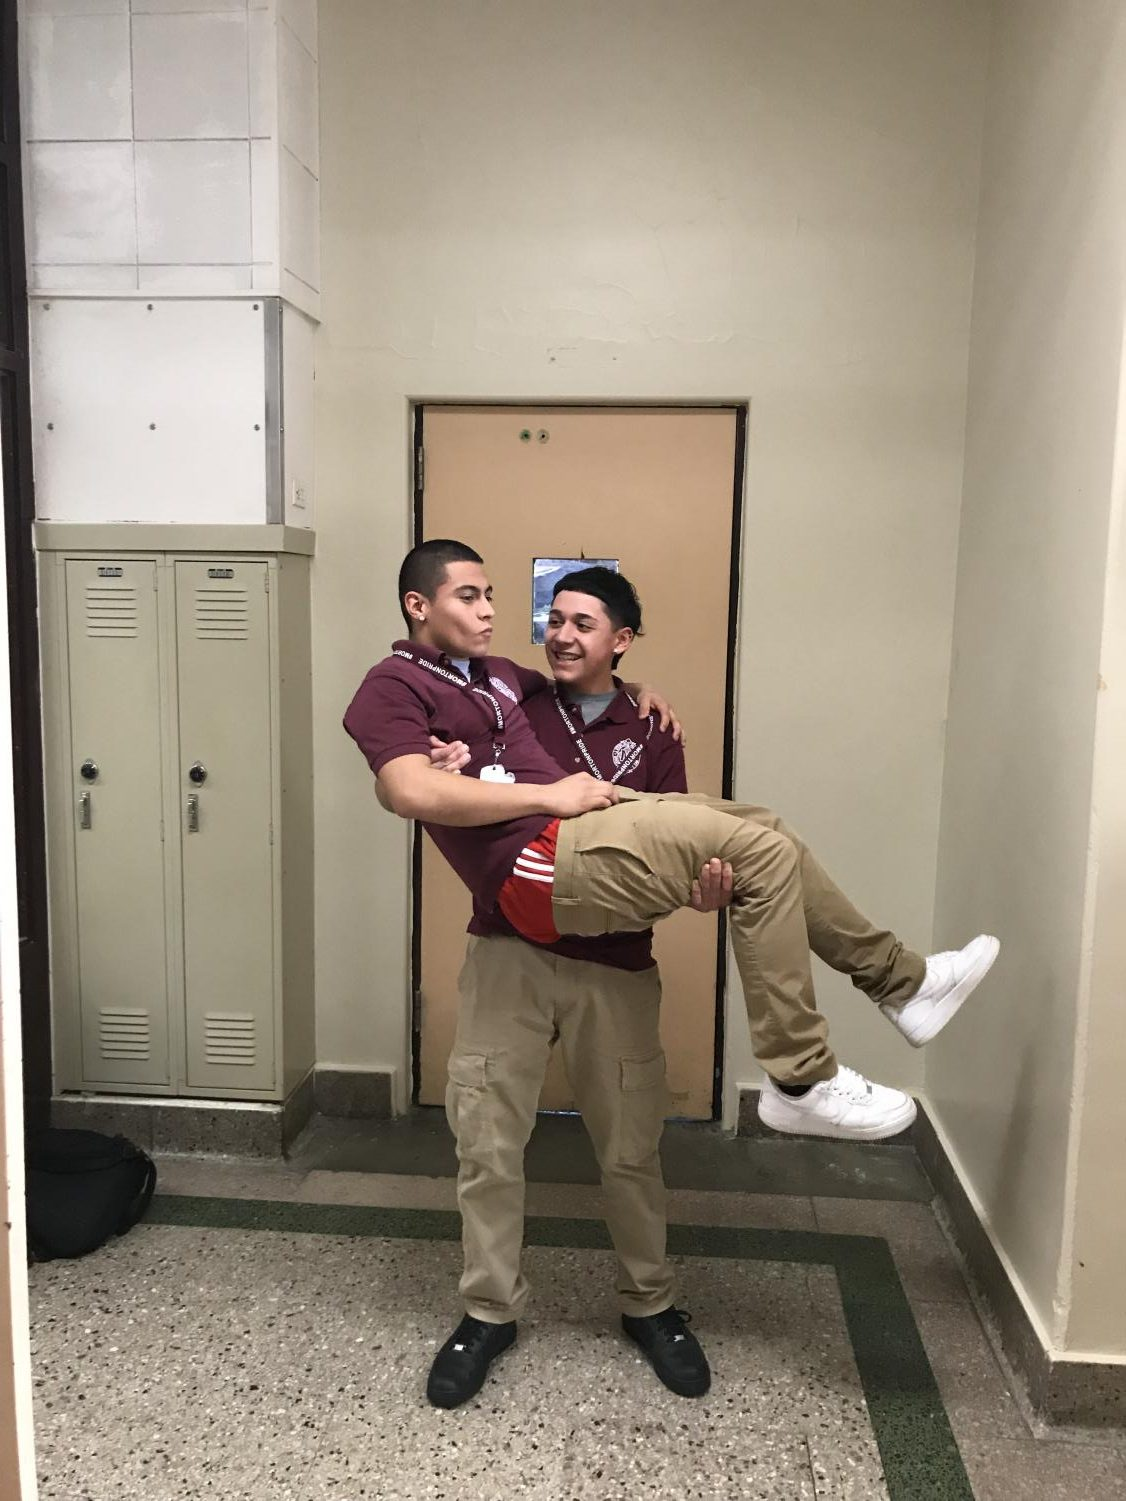 Two senior boys show what it's like to appreciate each other's company.